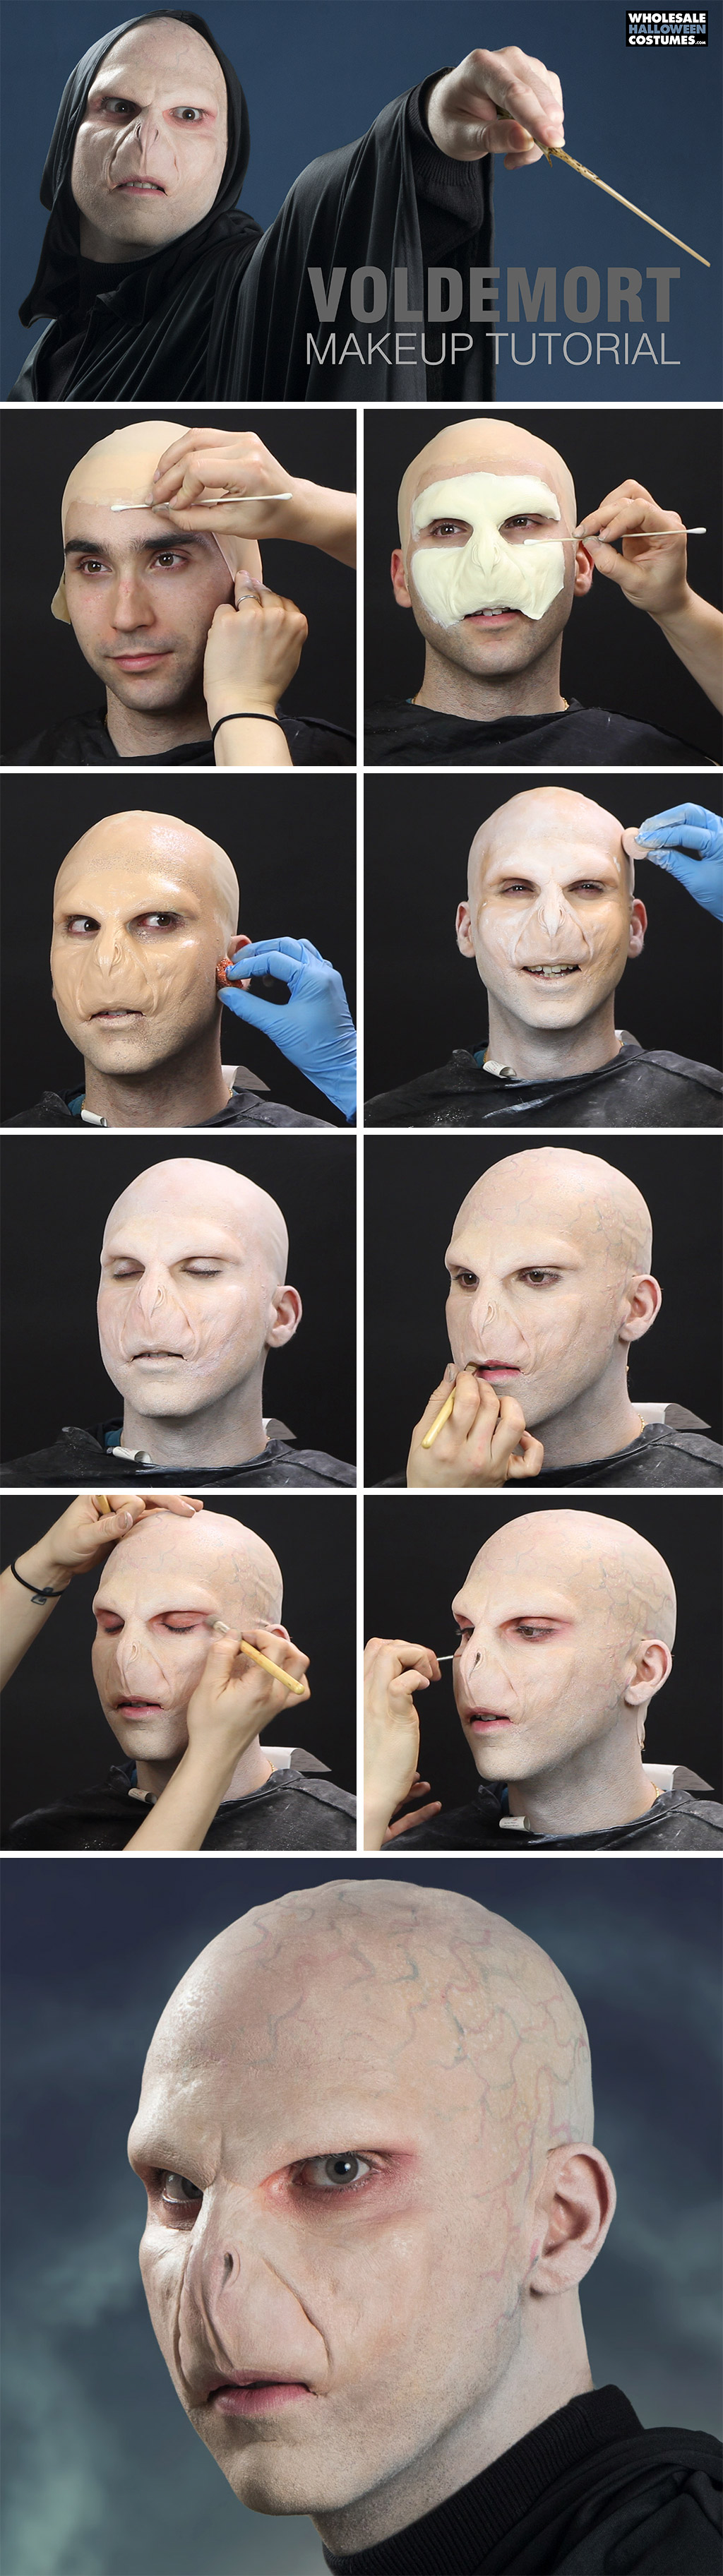 Harry potter voldemort makeup tutorial wholesale halloween harry potter voldemort makeup tutorial wholesale halloween costumes blog solutioingenieria